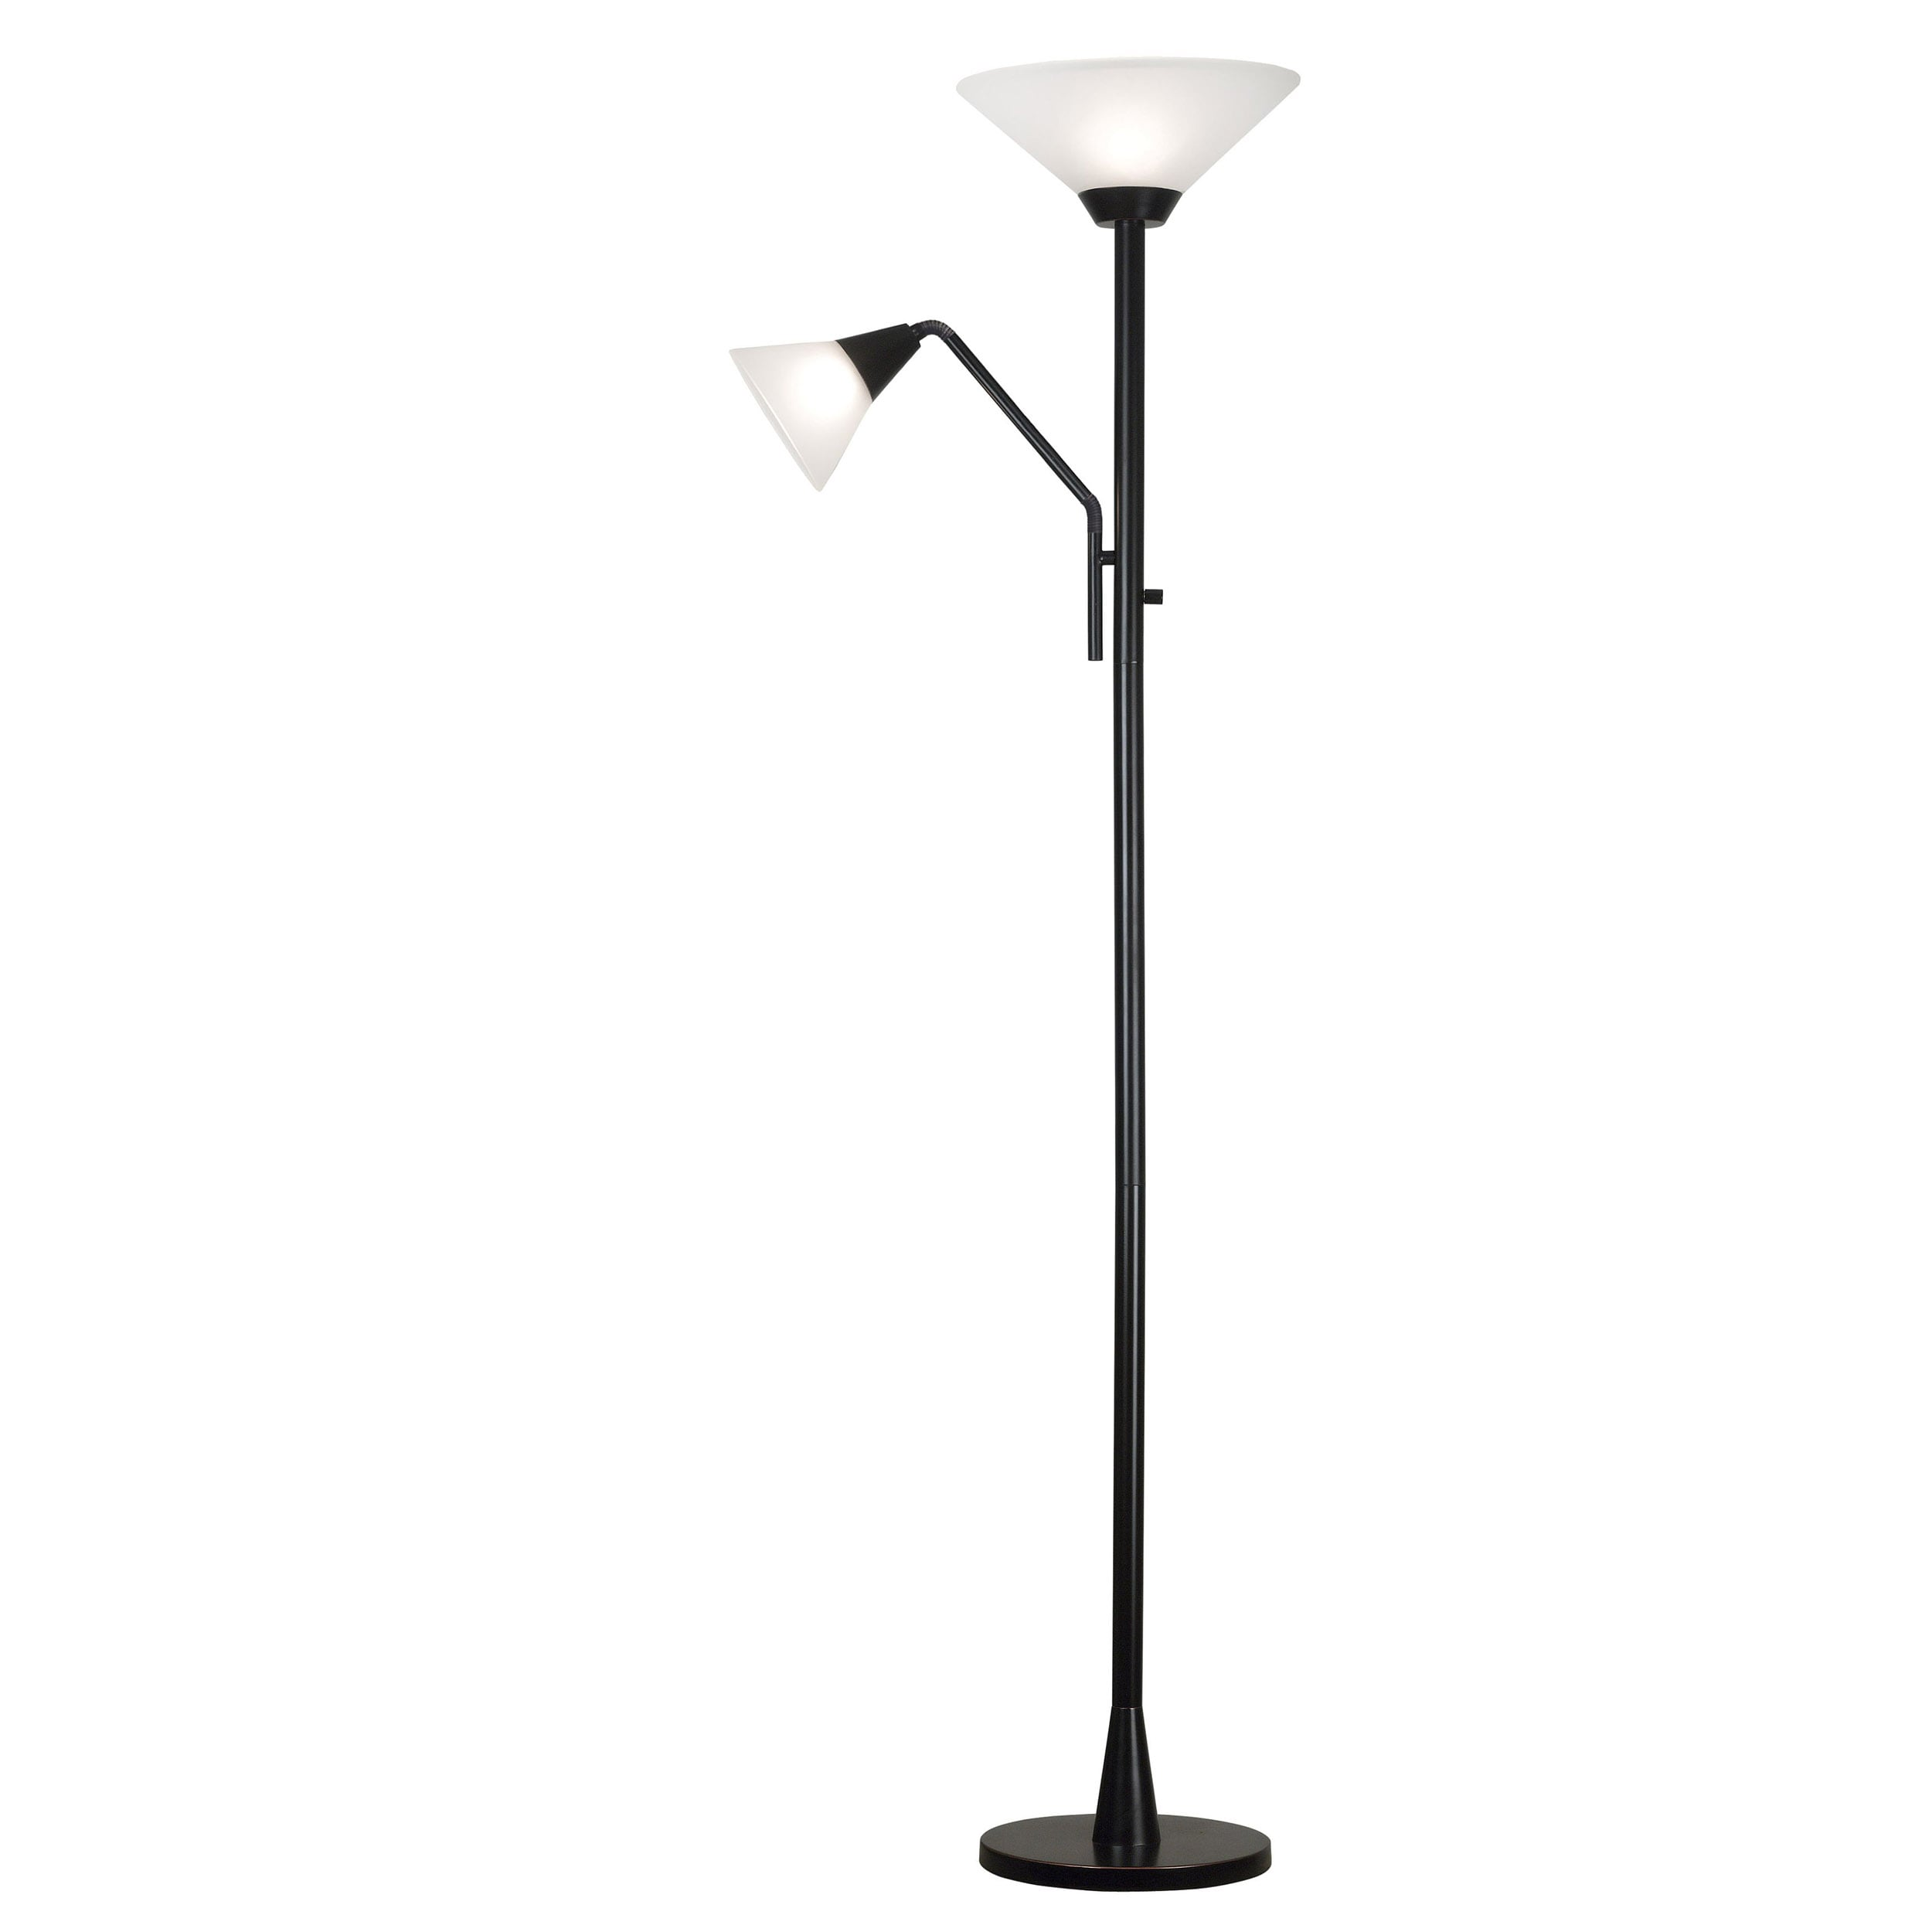 Rowe 2-light Oil Rubbed Bronze Torchiere